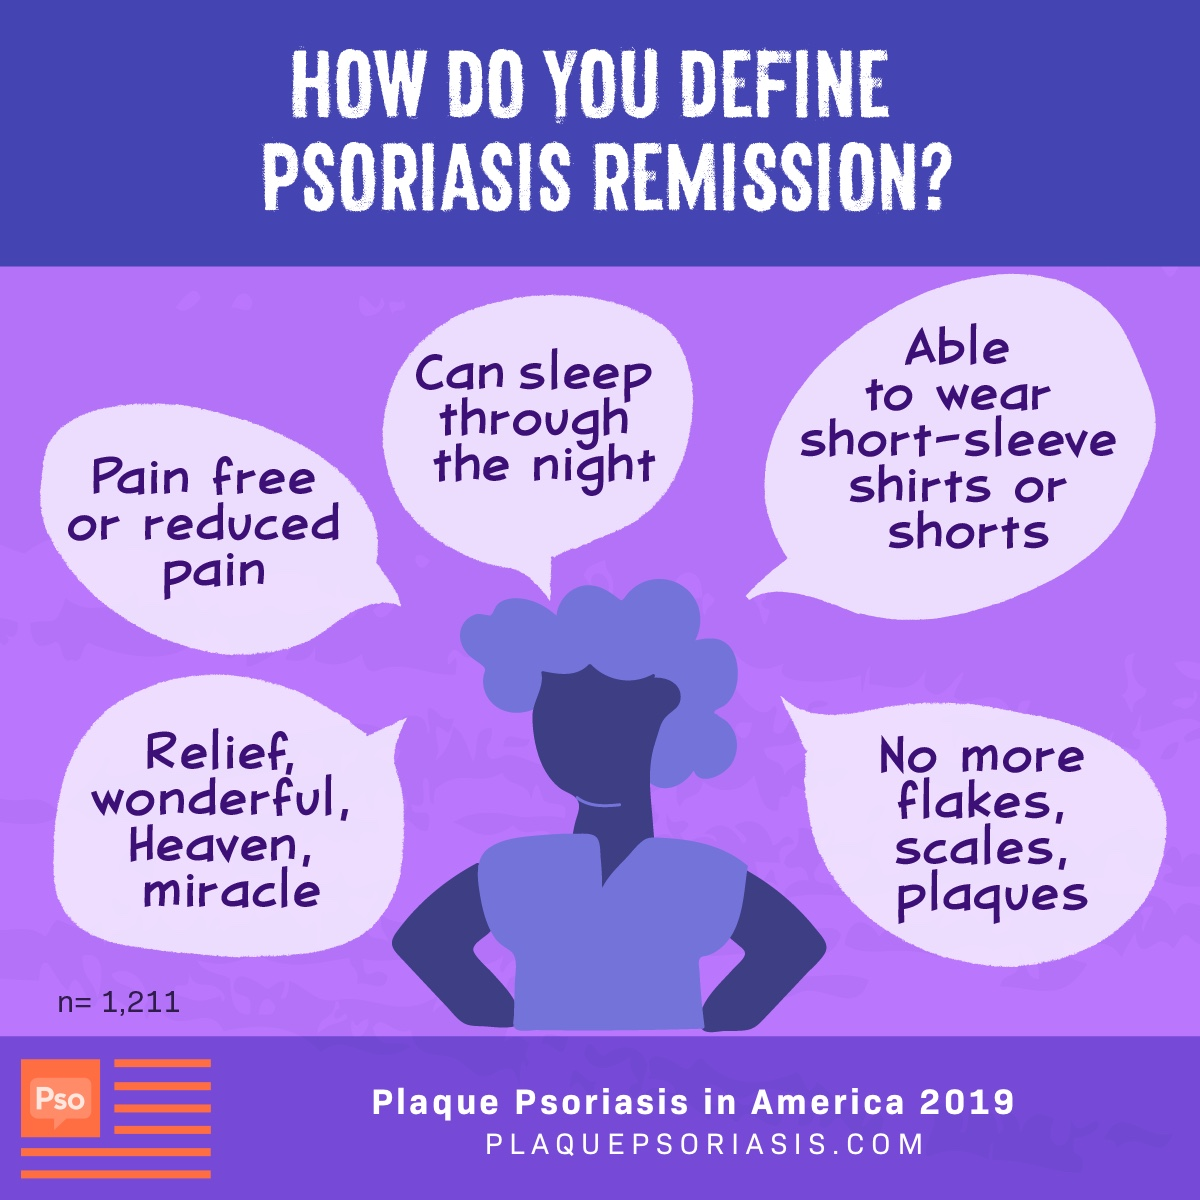 Patients define psoriasis remission in many ways. Some examples of definitions from patients were no more flakes, scales or plaques. Being pain free and just relief.